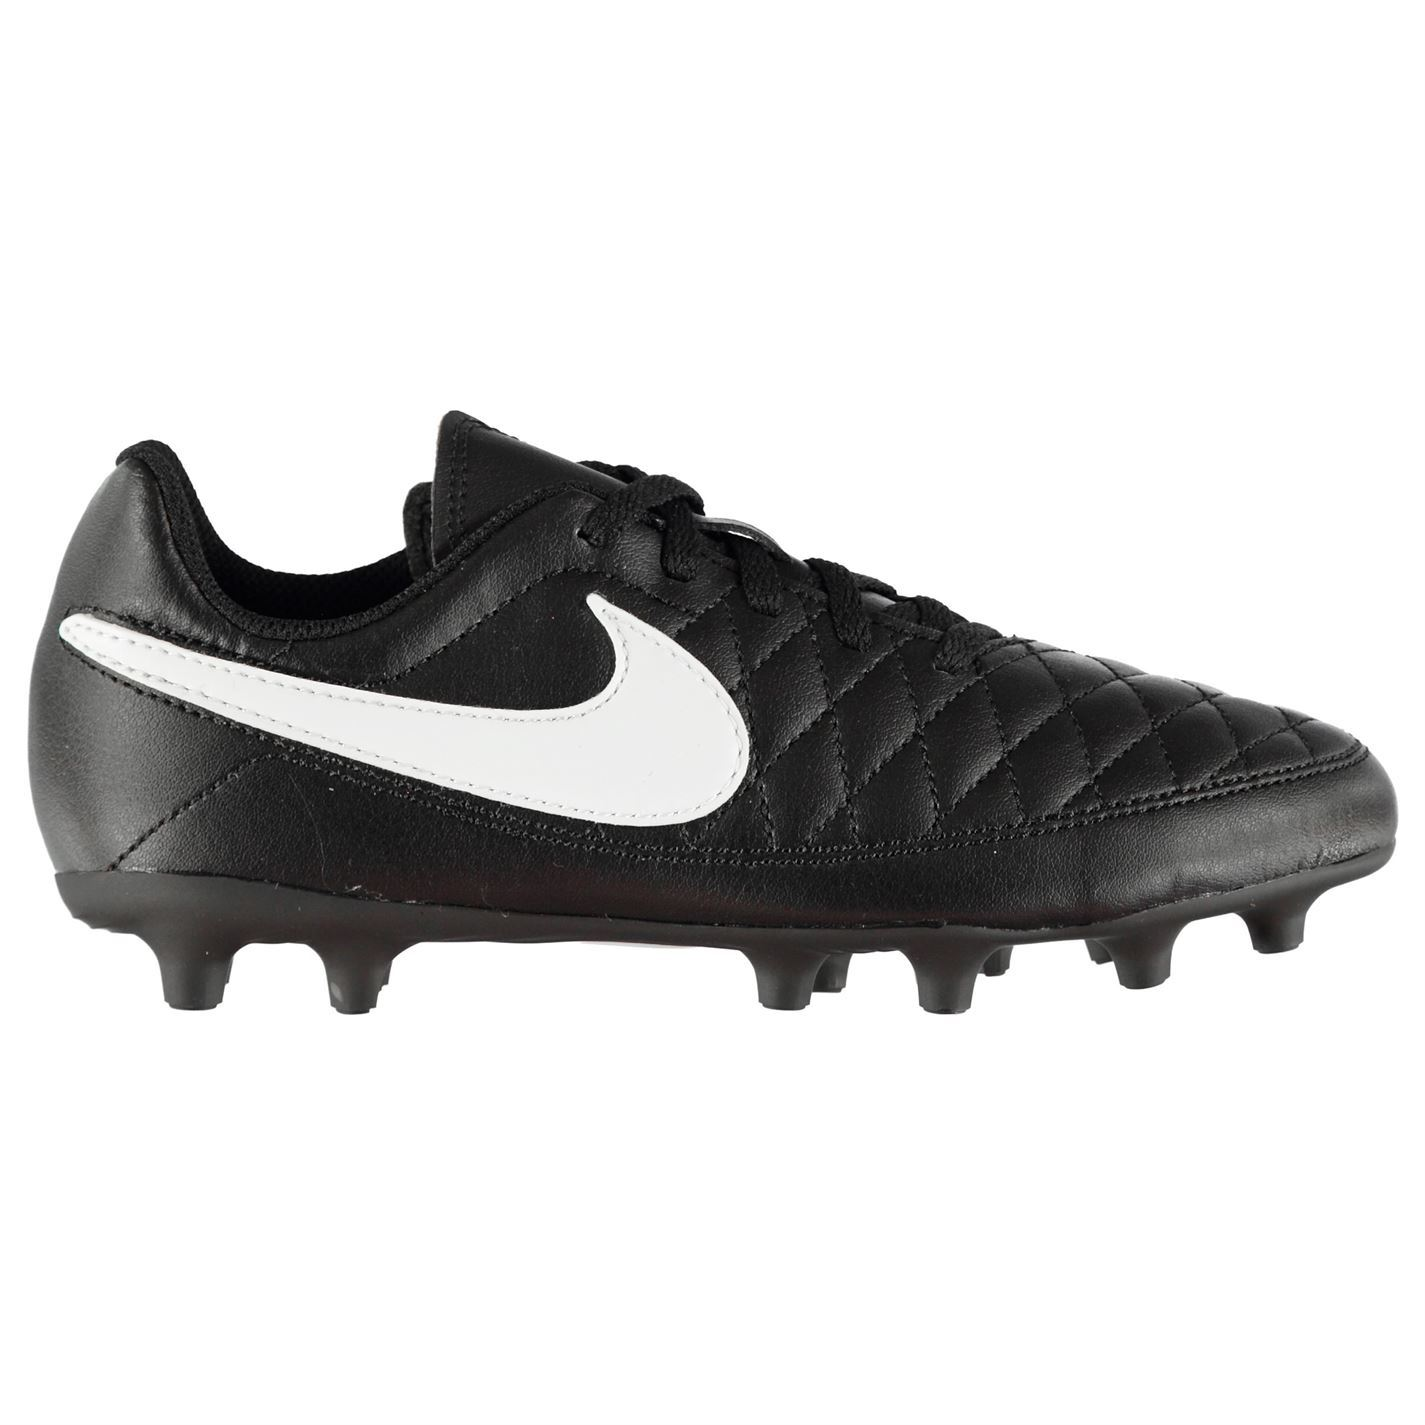 Nike-majestry-FG-Firm-Ground-Chaussures-De-Football-Enfants-Football-Chaussures-Crampons miniature 11